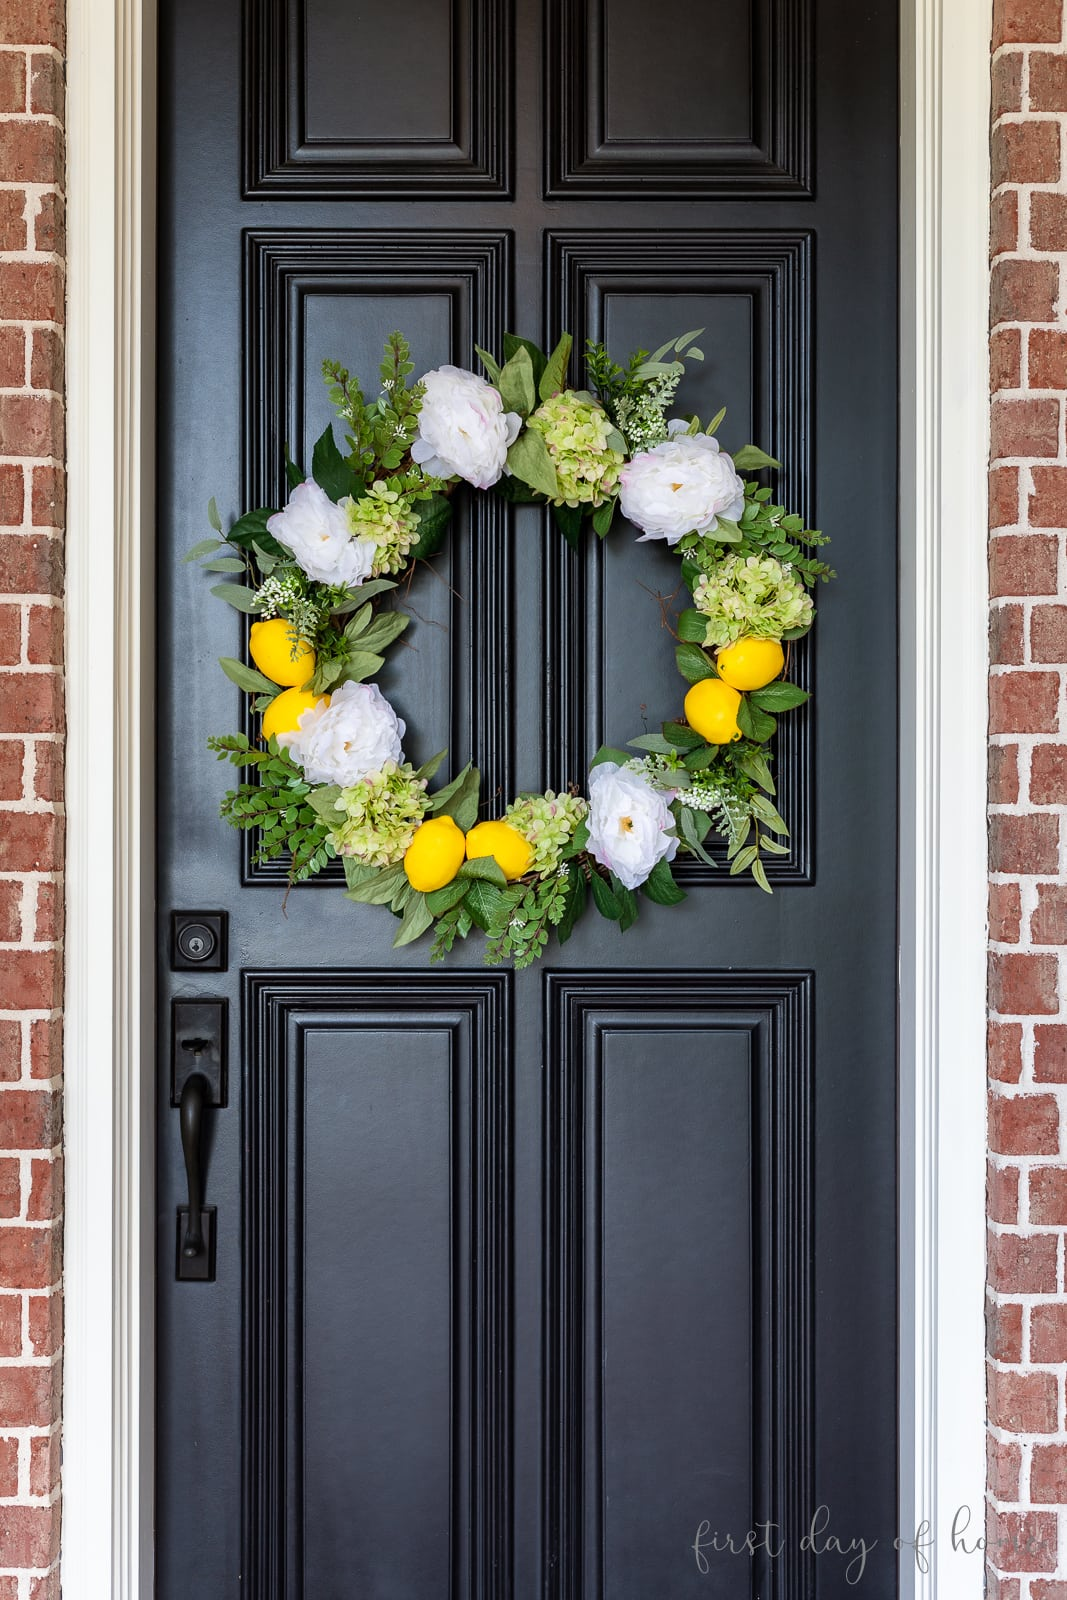 Grapevine wreath with lemons, hydrangeas, peonies and greenery on black front door